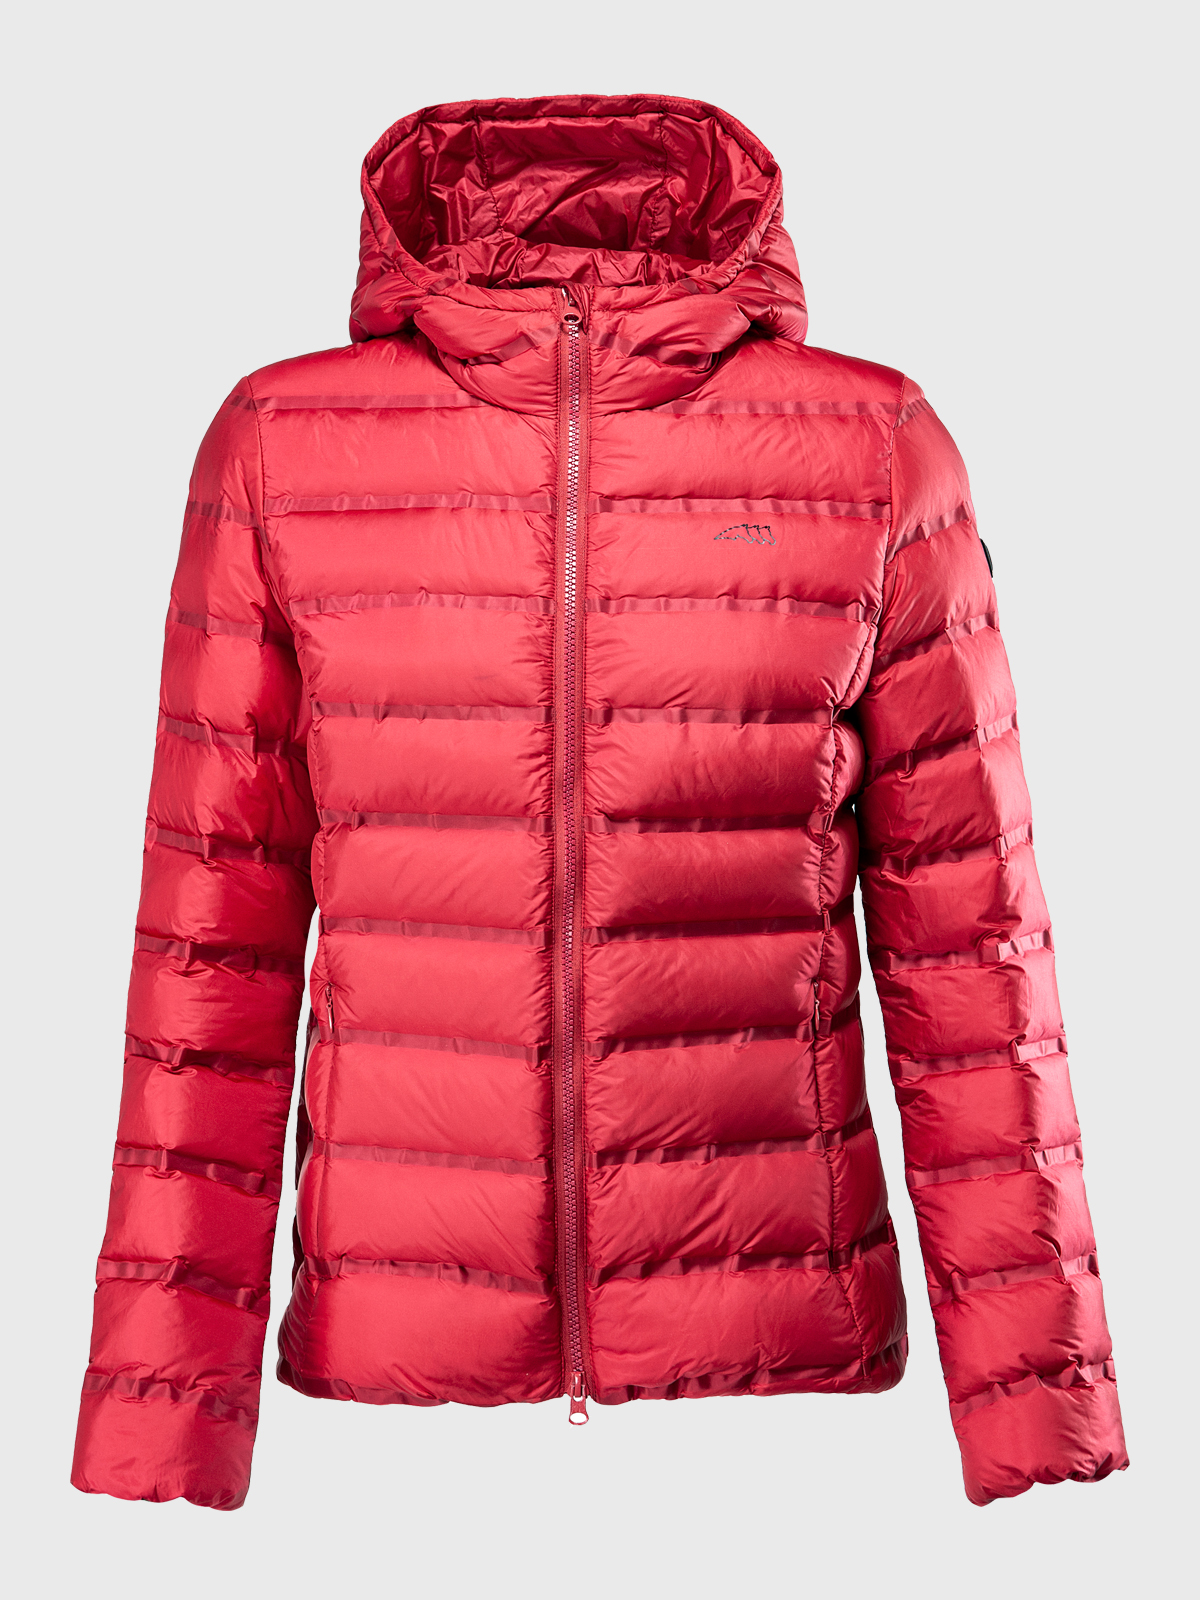 ADIZ WOMEN'S ECO DOWN JACKET 5